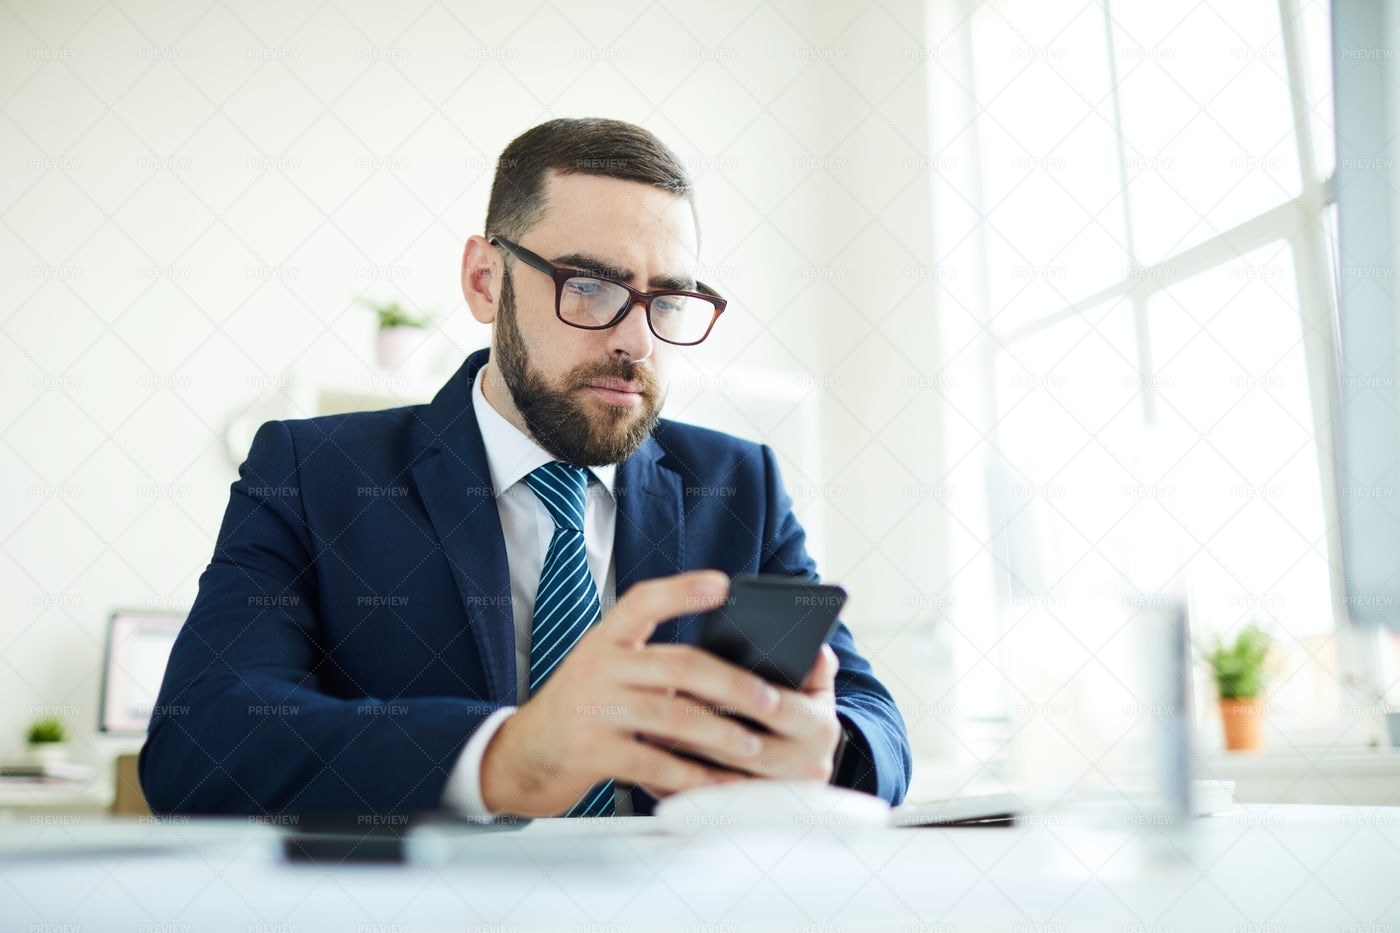 Business Manager Checking Phone In...: Stock Photos